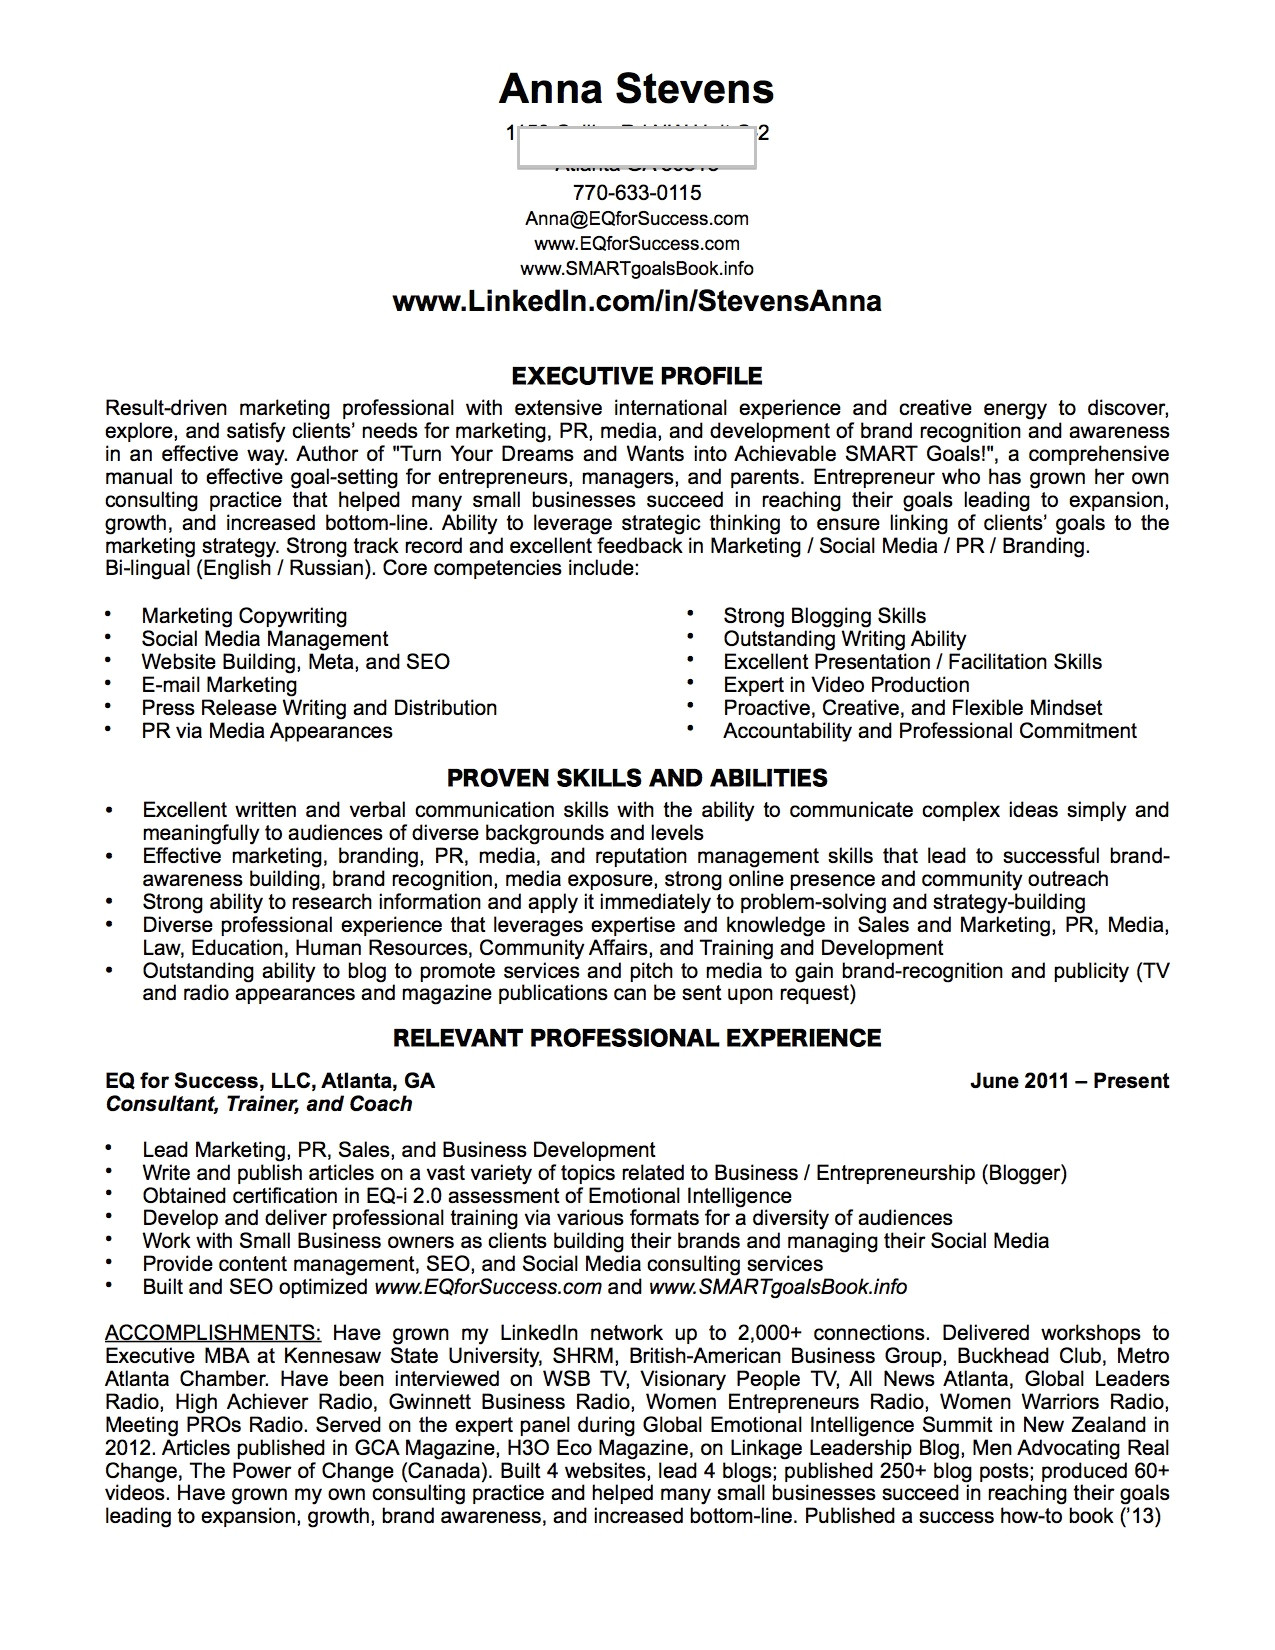 linkedin job application resume and cv for success